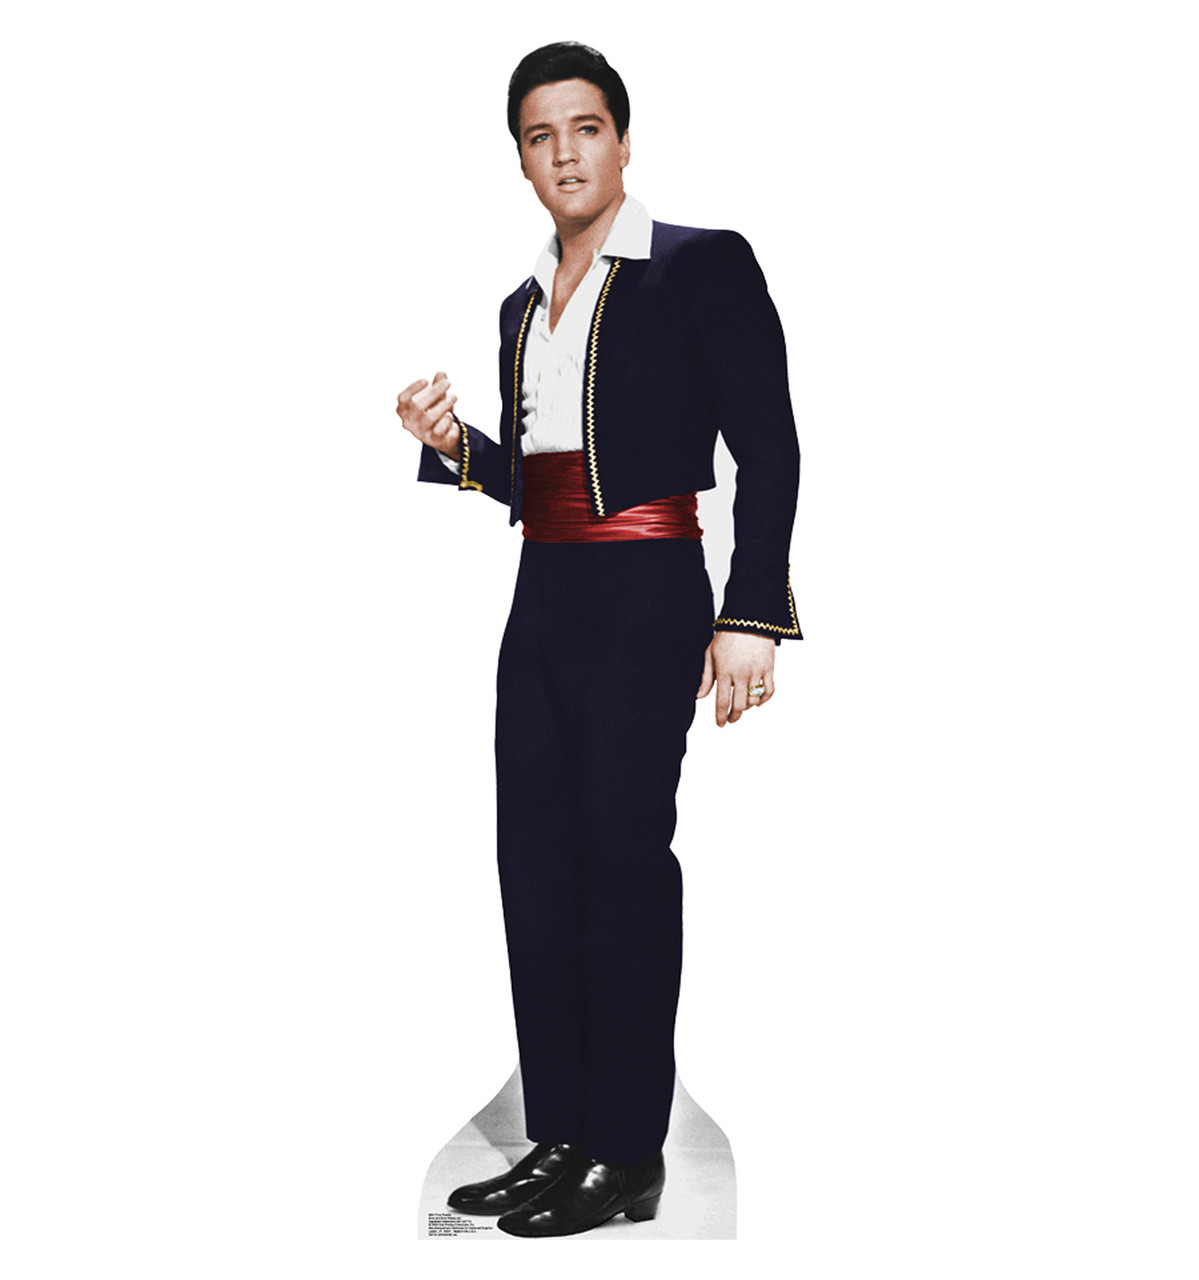 Elvis Matador Talking Cardboard Cutout 841T